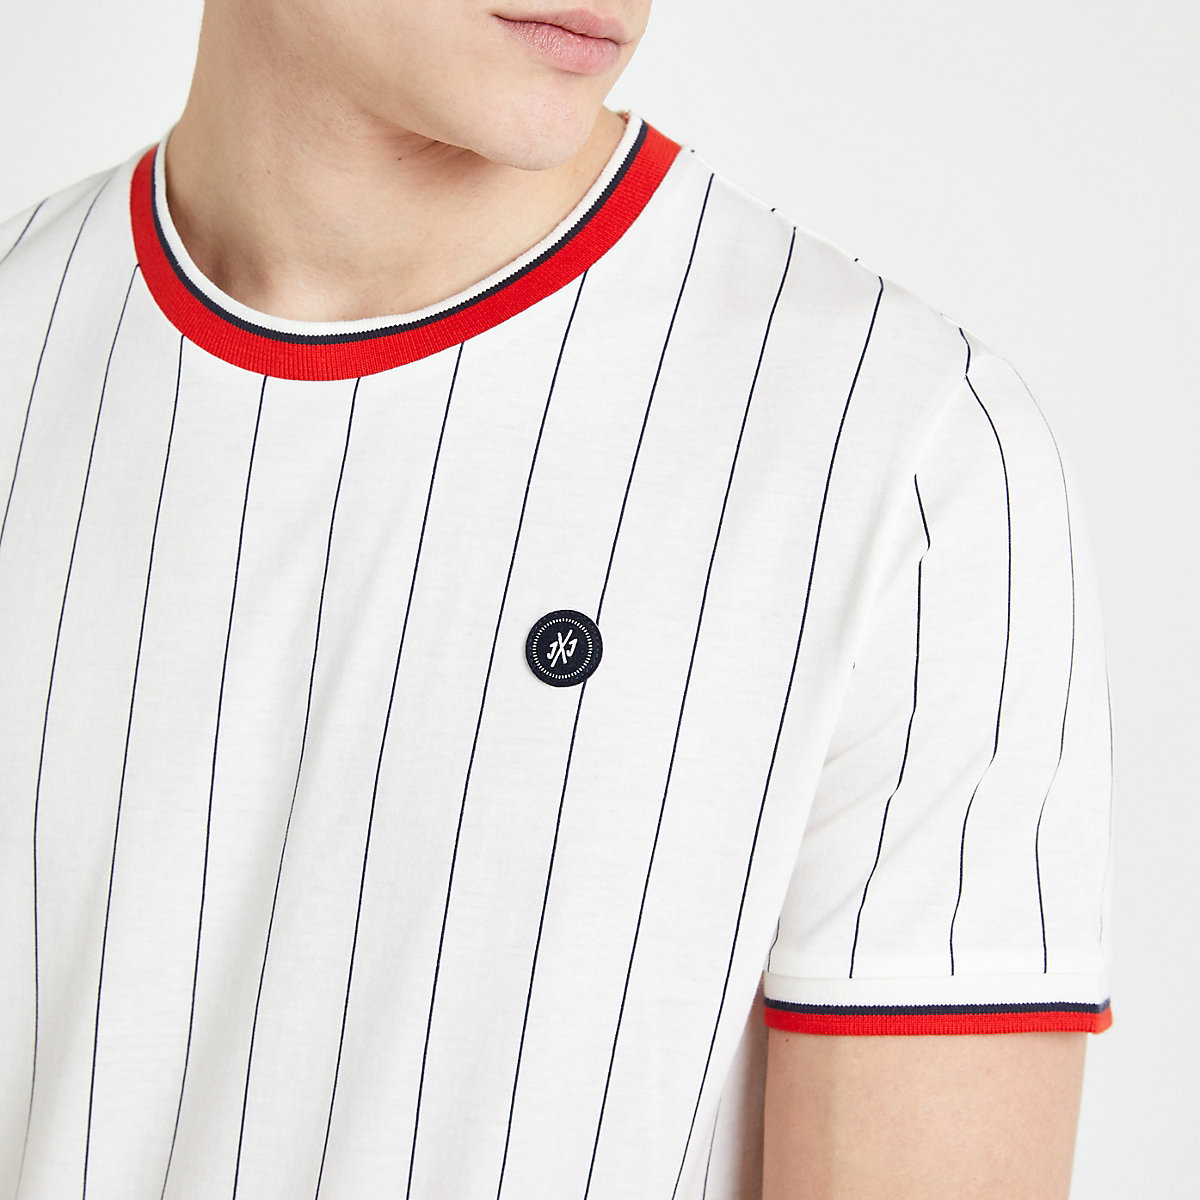 Jack and Jones white pinstripe T-shirt